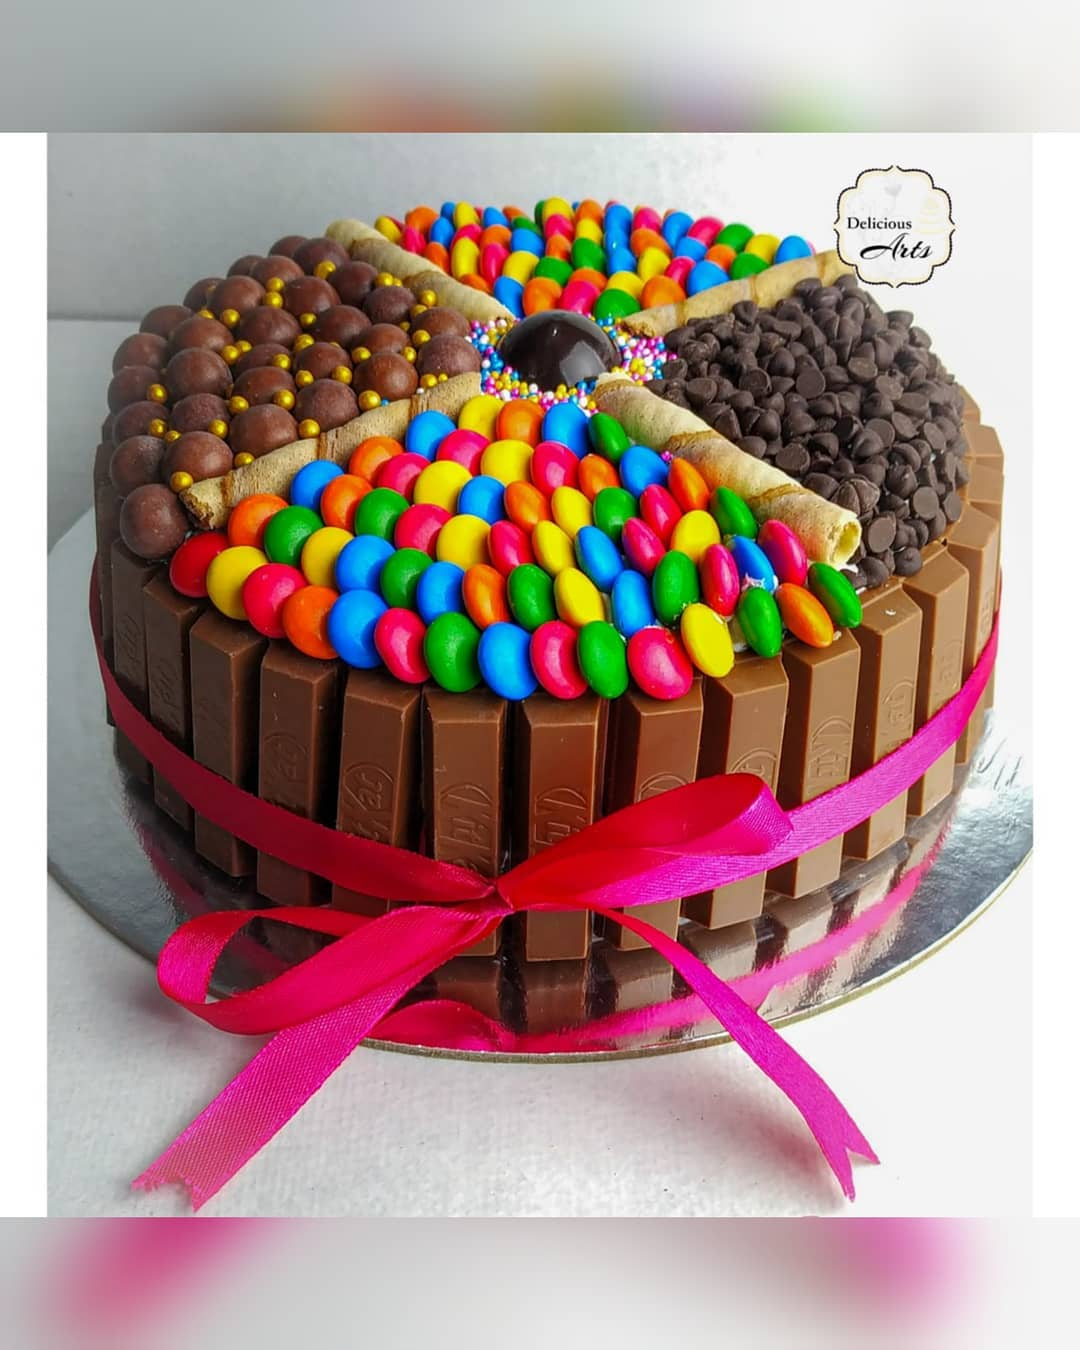 Chocolate Overloaded Theme Cake Designs, Images, Price Near Me